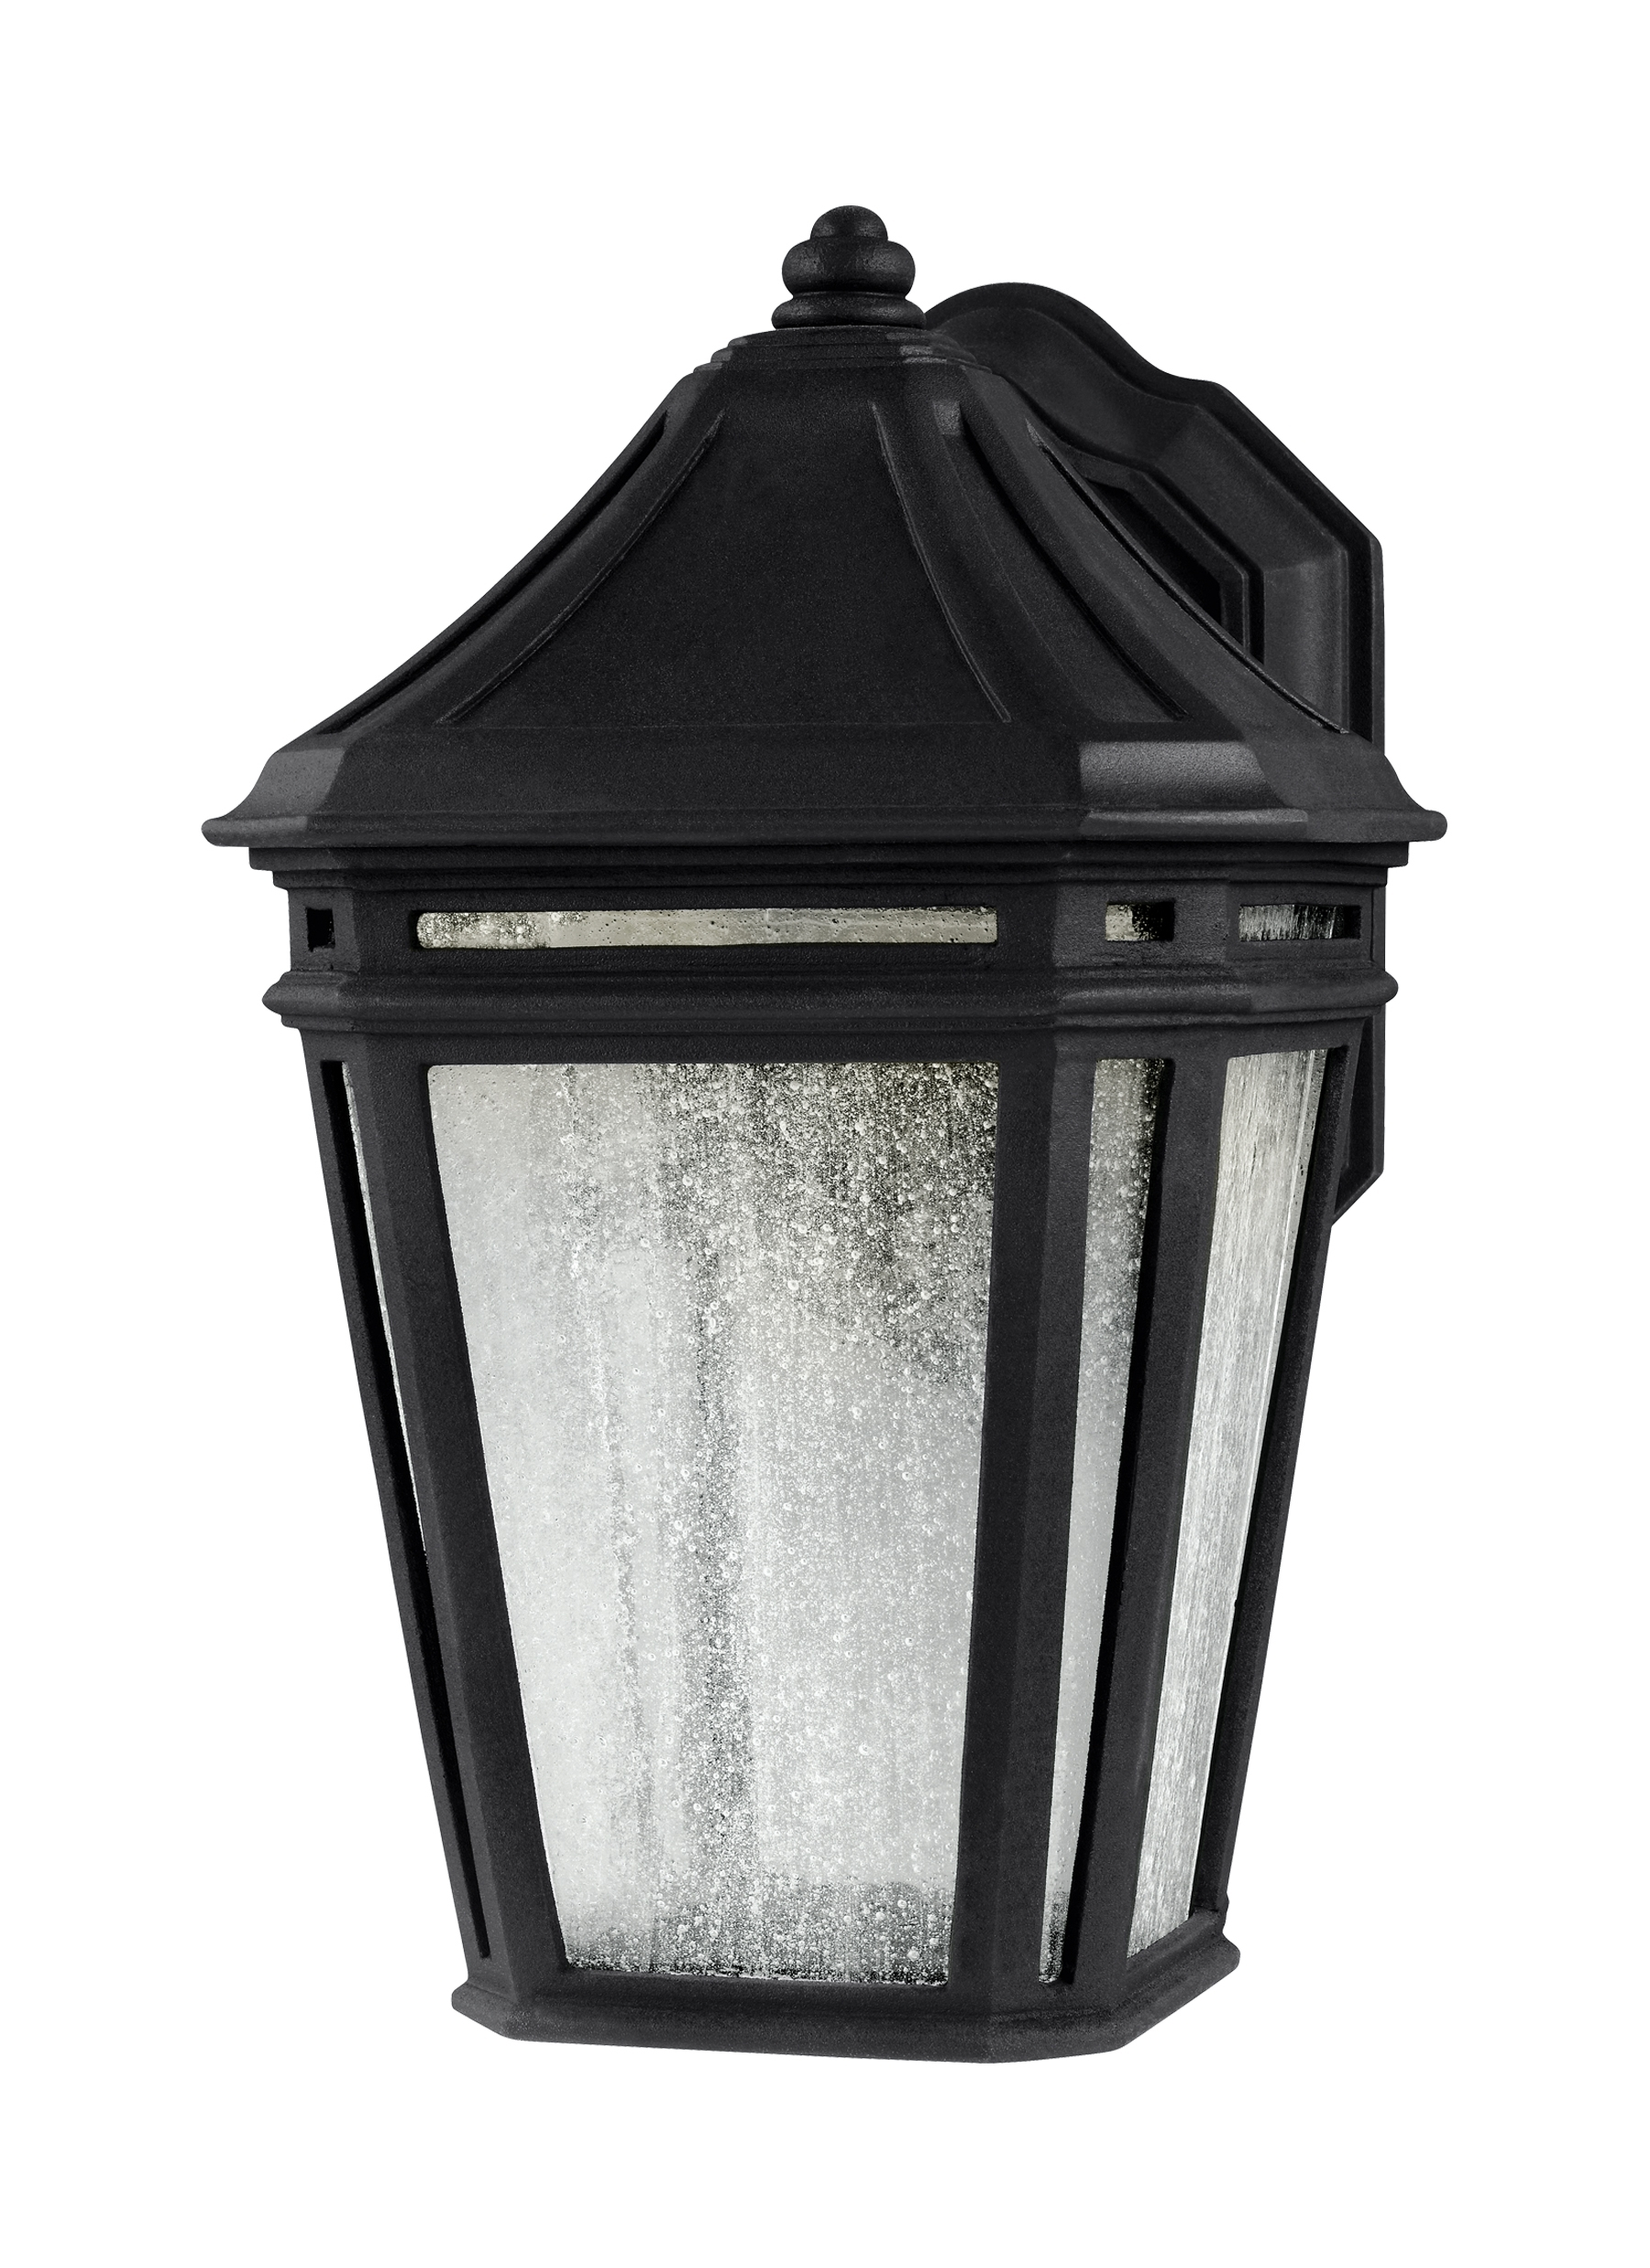 Newest Ol11302Bk Led,led Outdoor Sconce,black In Outdoor Wall Lighting At Wayfair (Gallery 8 of 20)